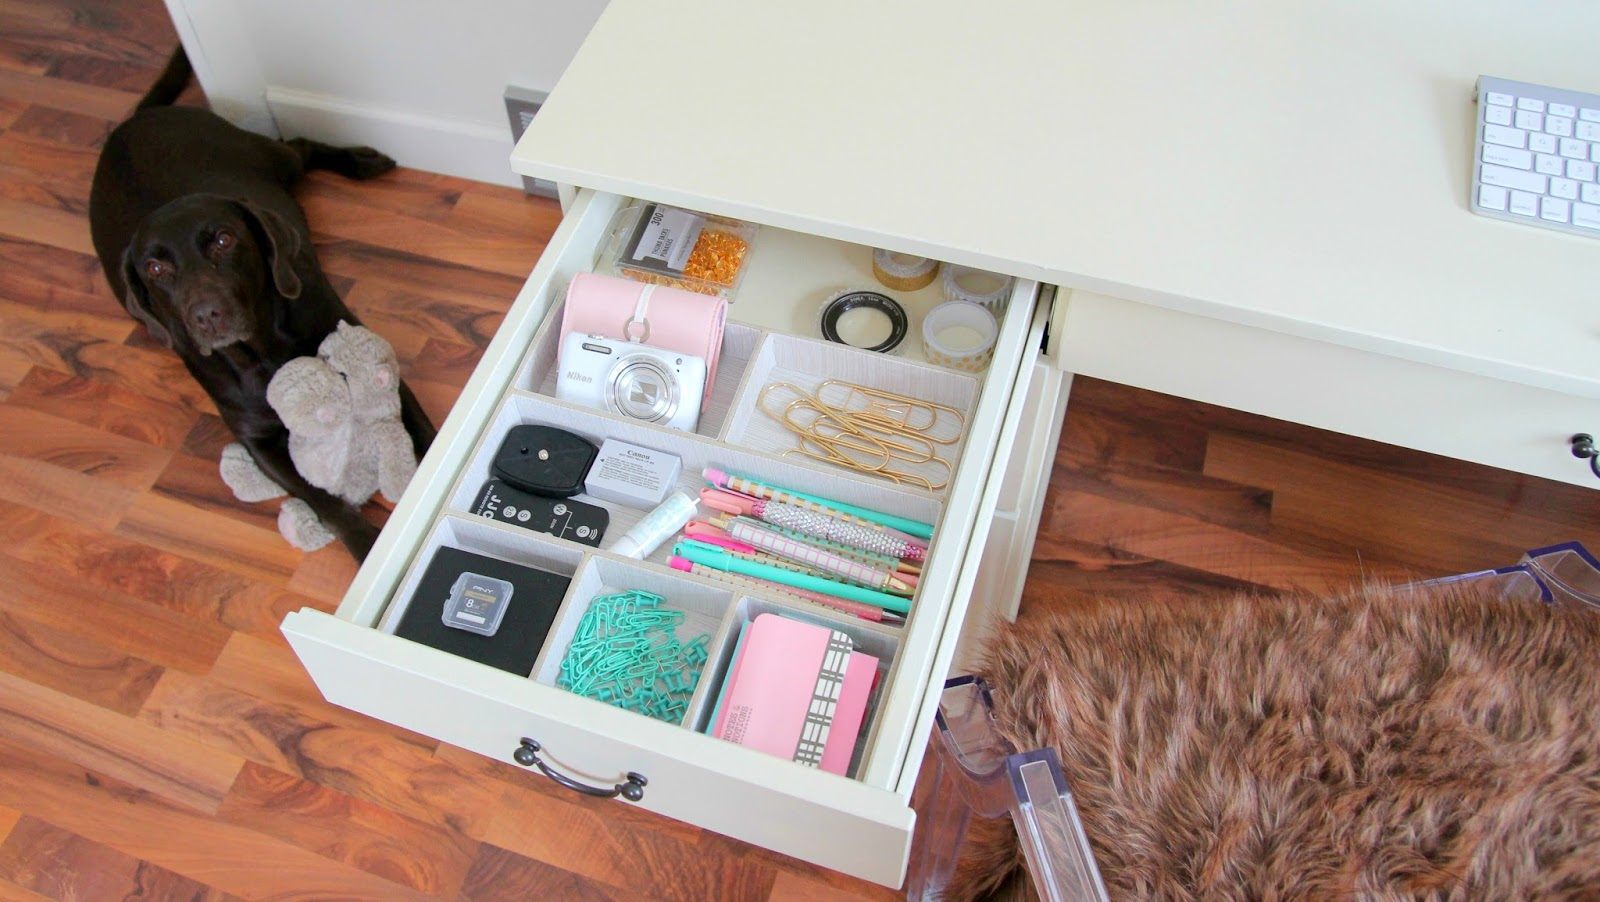 Desk Organization Ideas - Desk Organizer - Target Desk Organizer